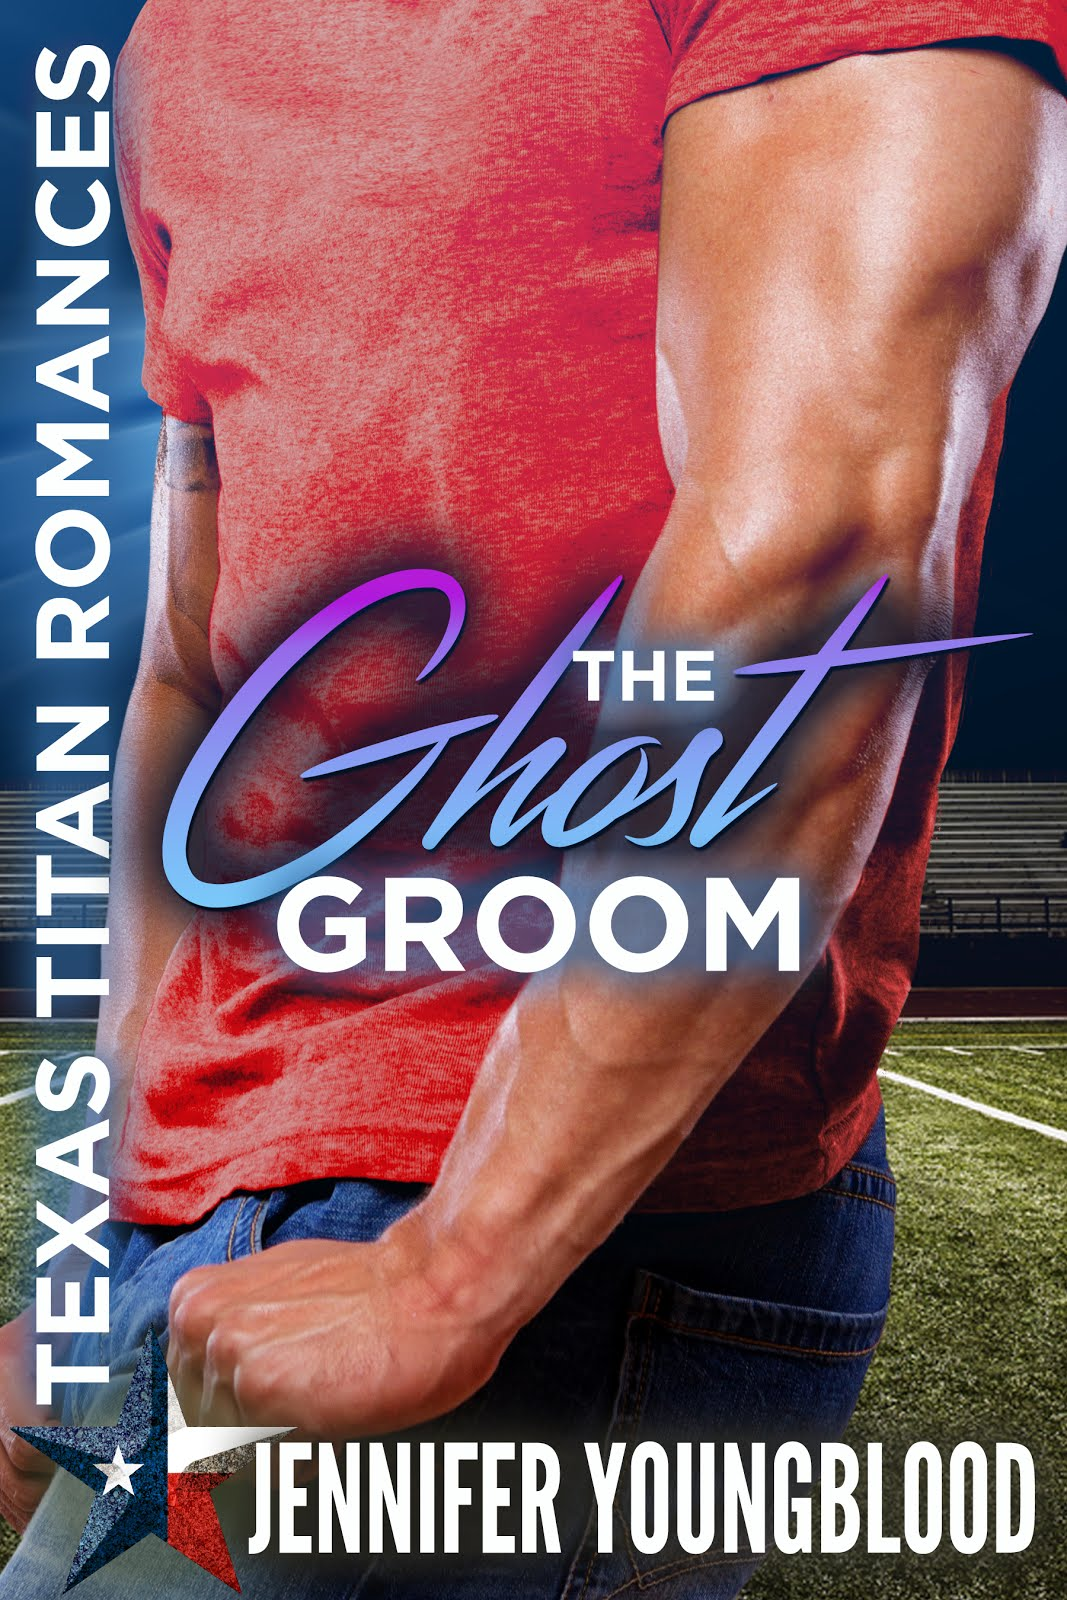 The Ghost Groom